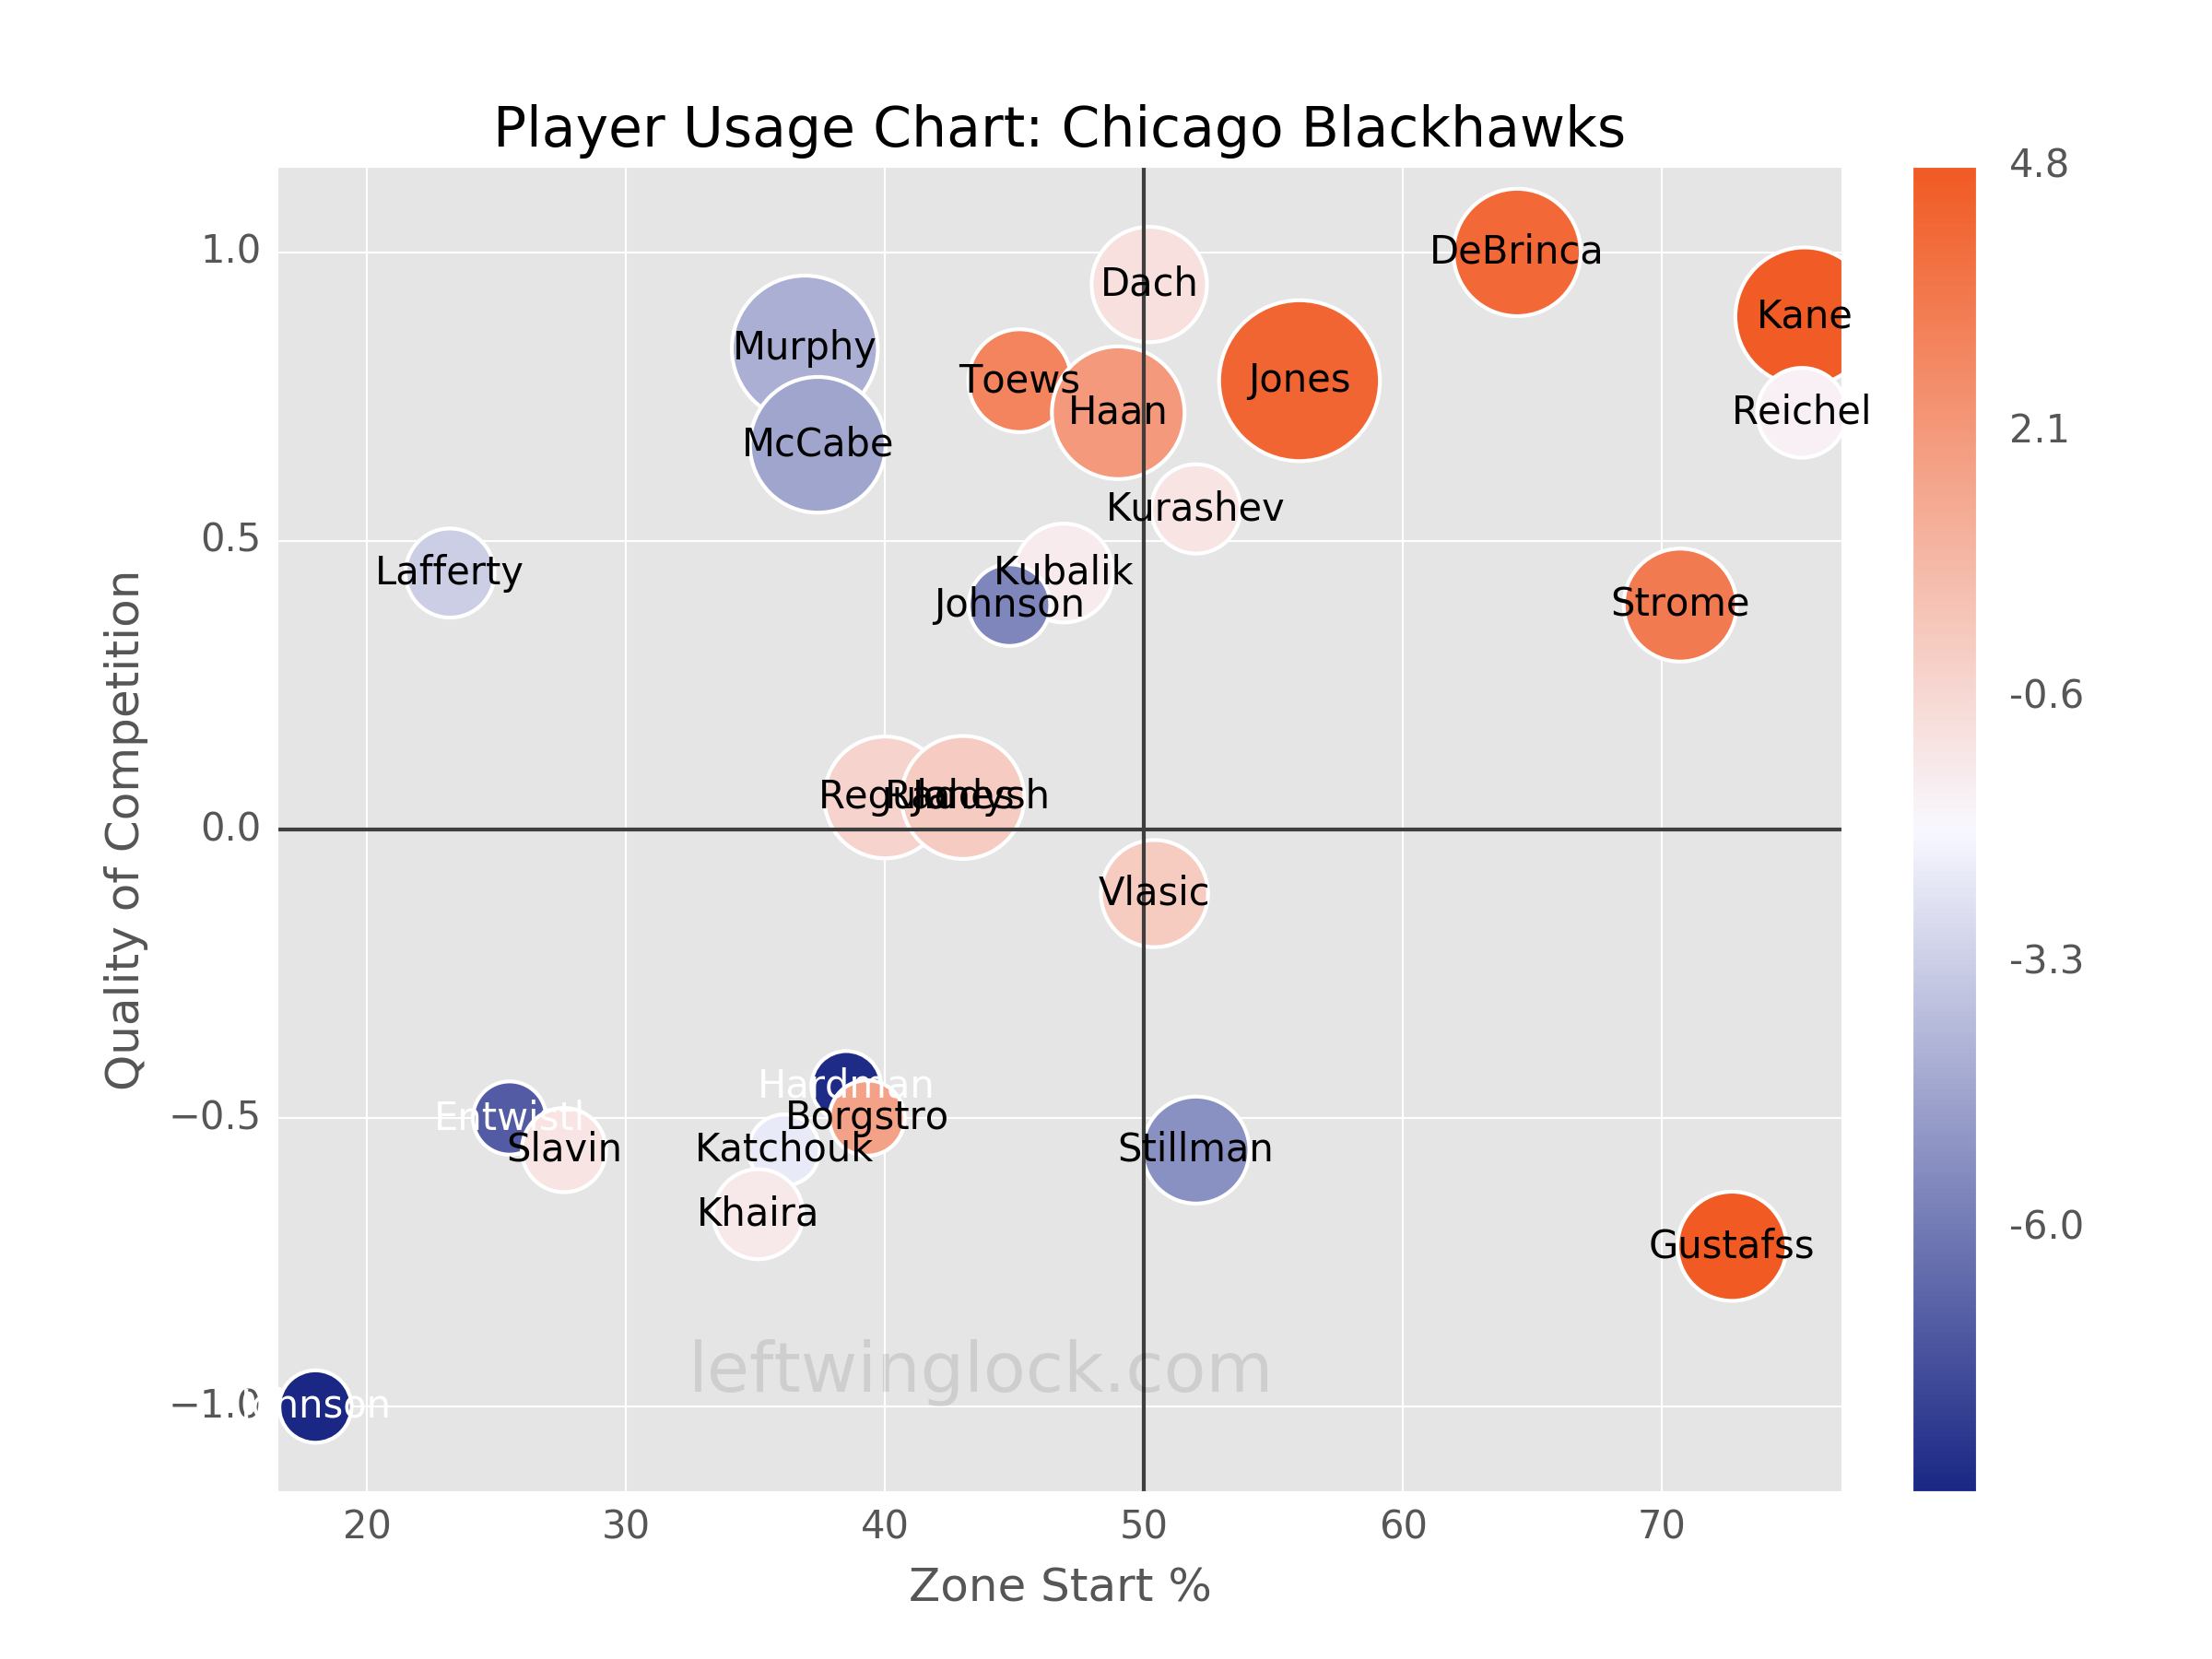 Chicago Blackhawks Player Usage Chart